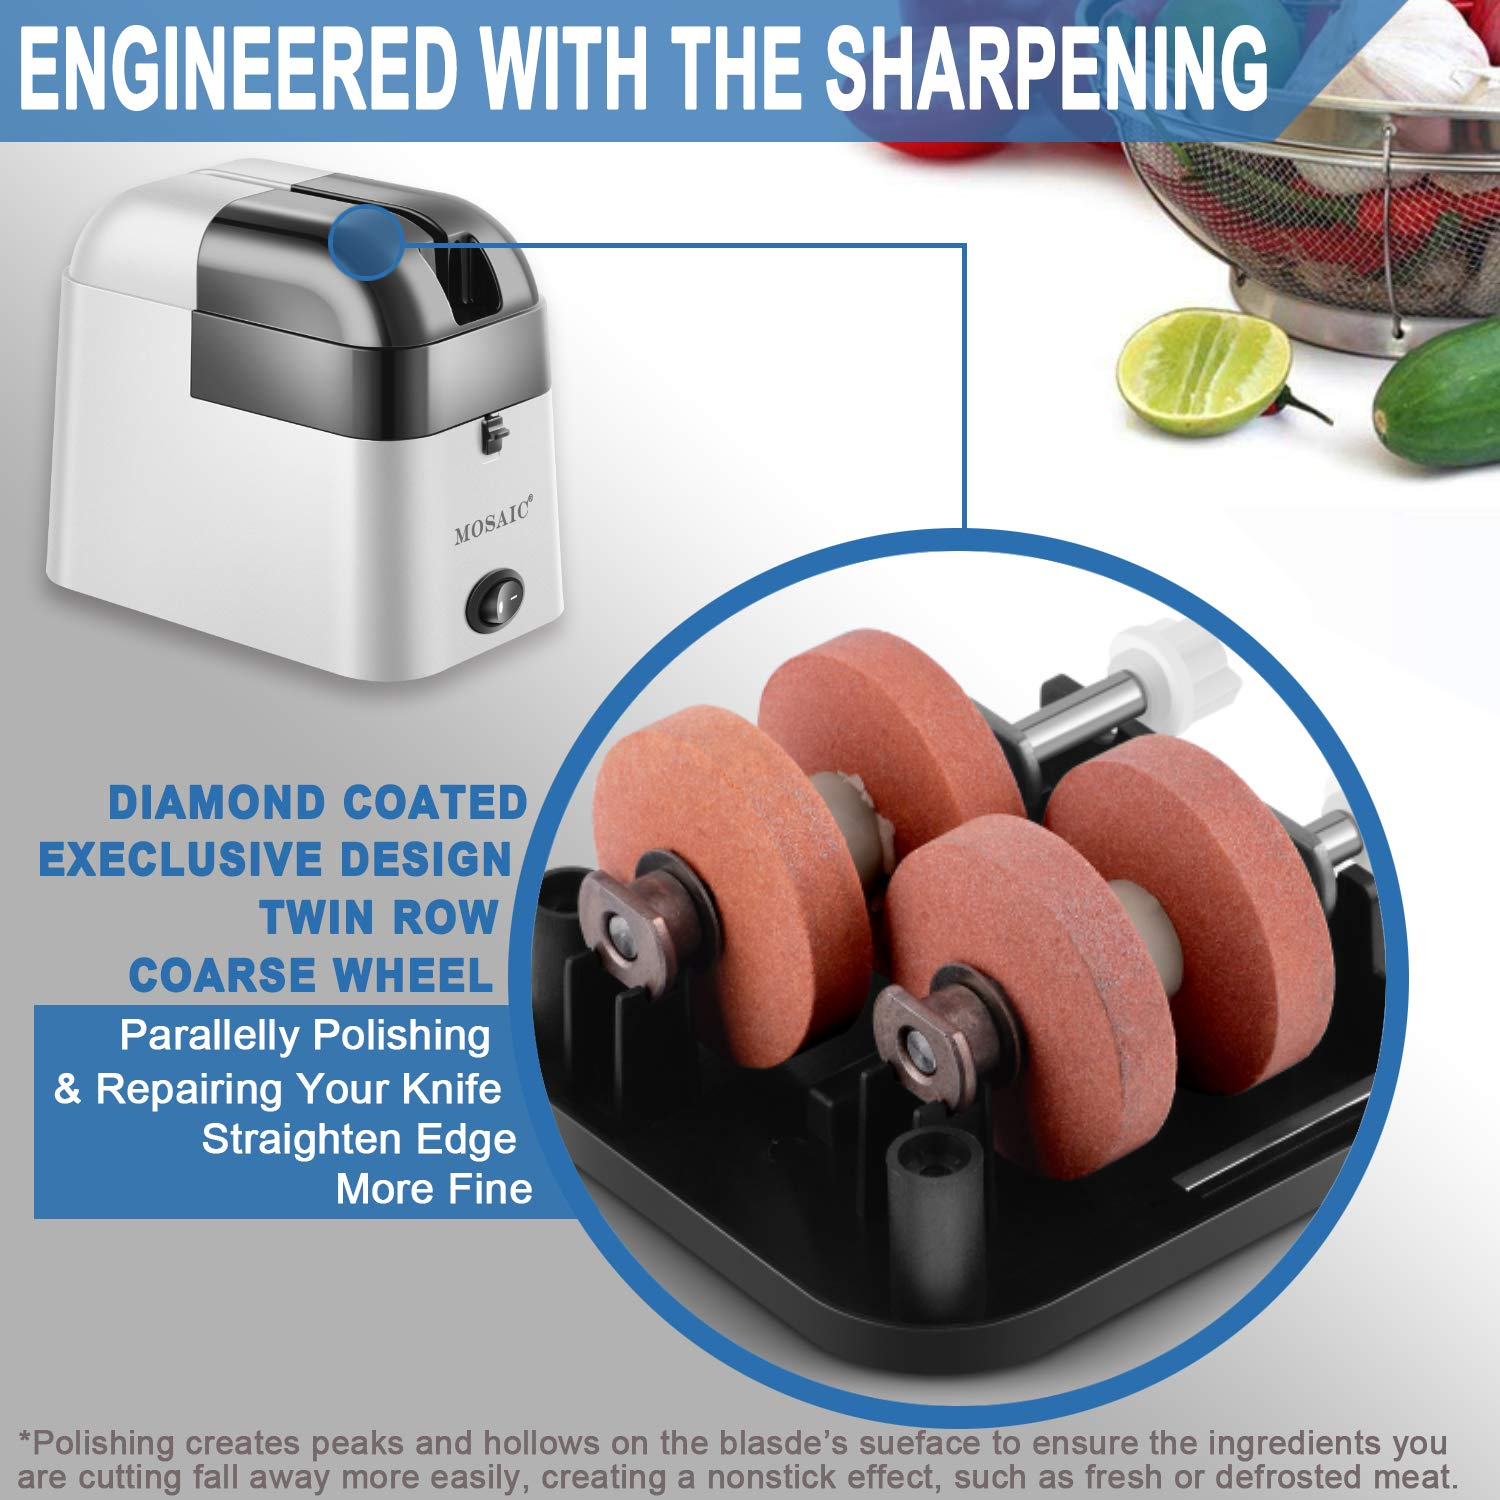 MOSAIC Electric Knife Sharpener with Detachable Diamond Wheel for Straight Knives, Knives Sharpening Tool with Waterproof Function and Non-Slip Base - Grey by Mosaic (Image #3)